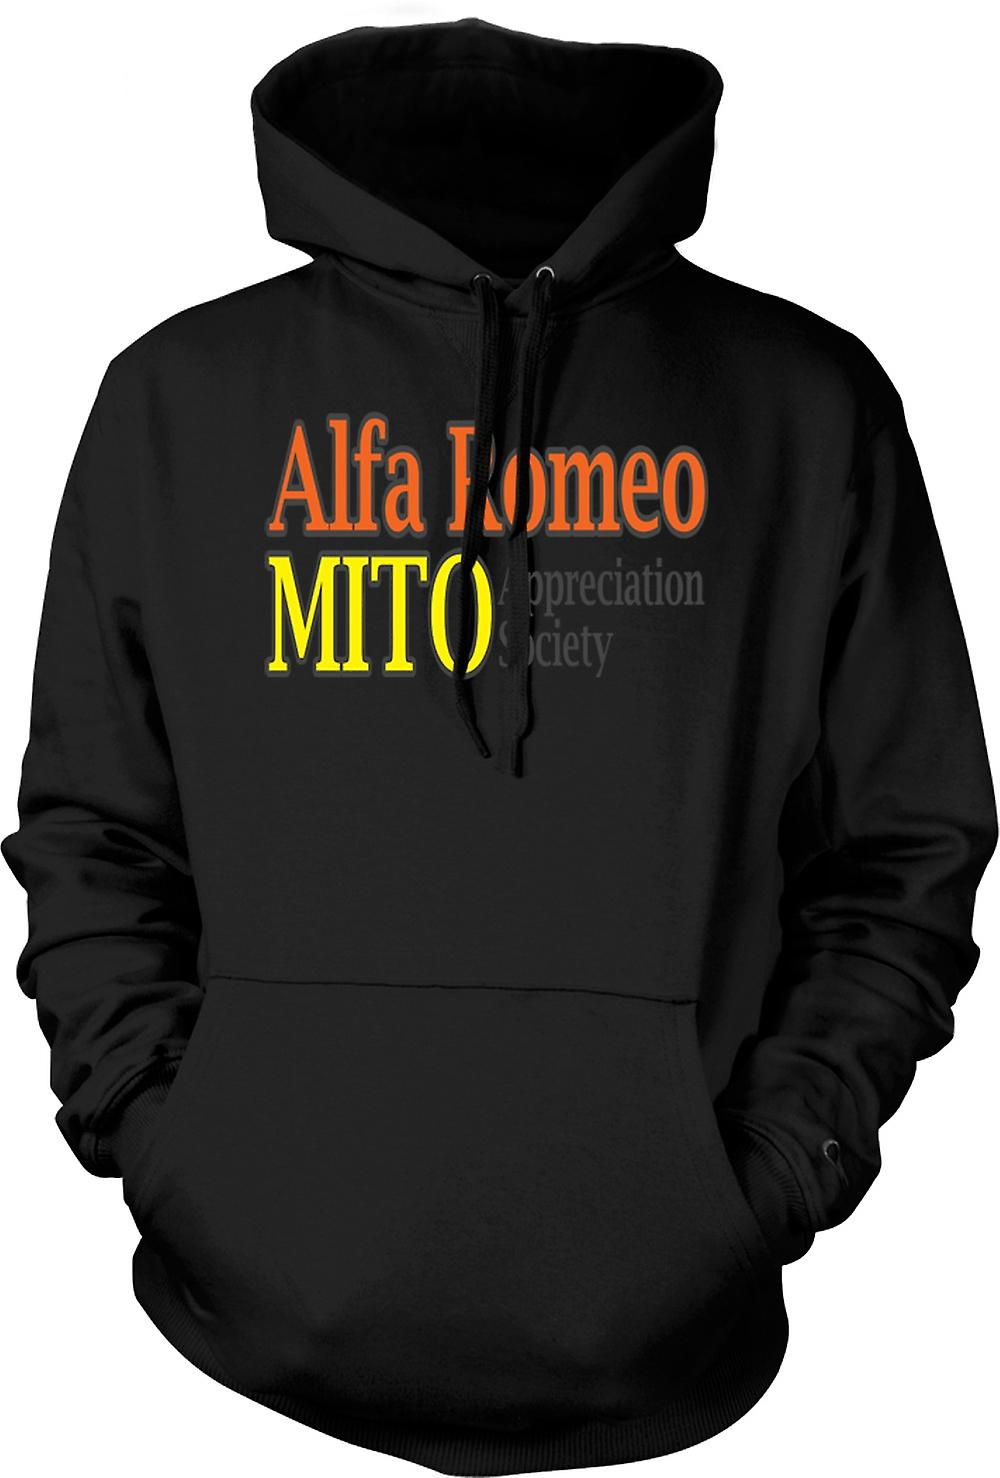 Mens Hoodie - Alfa Romeo Mito Appreciation Society